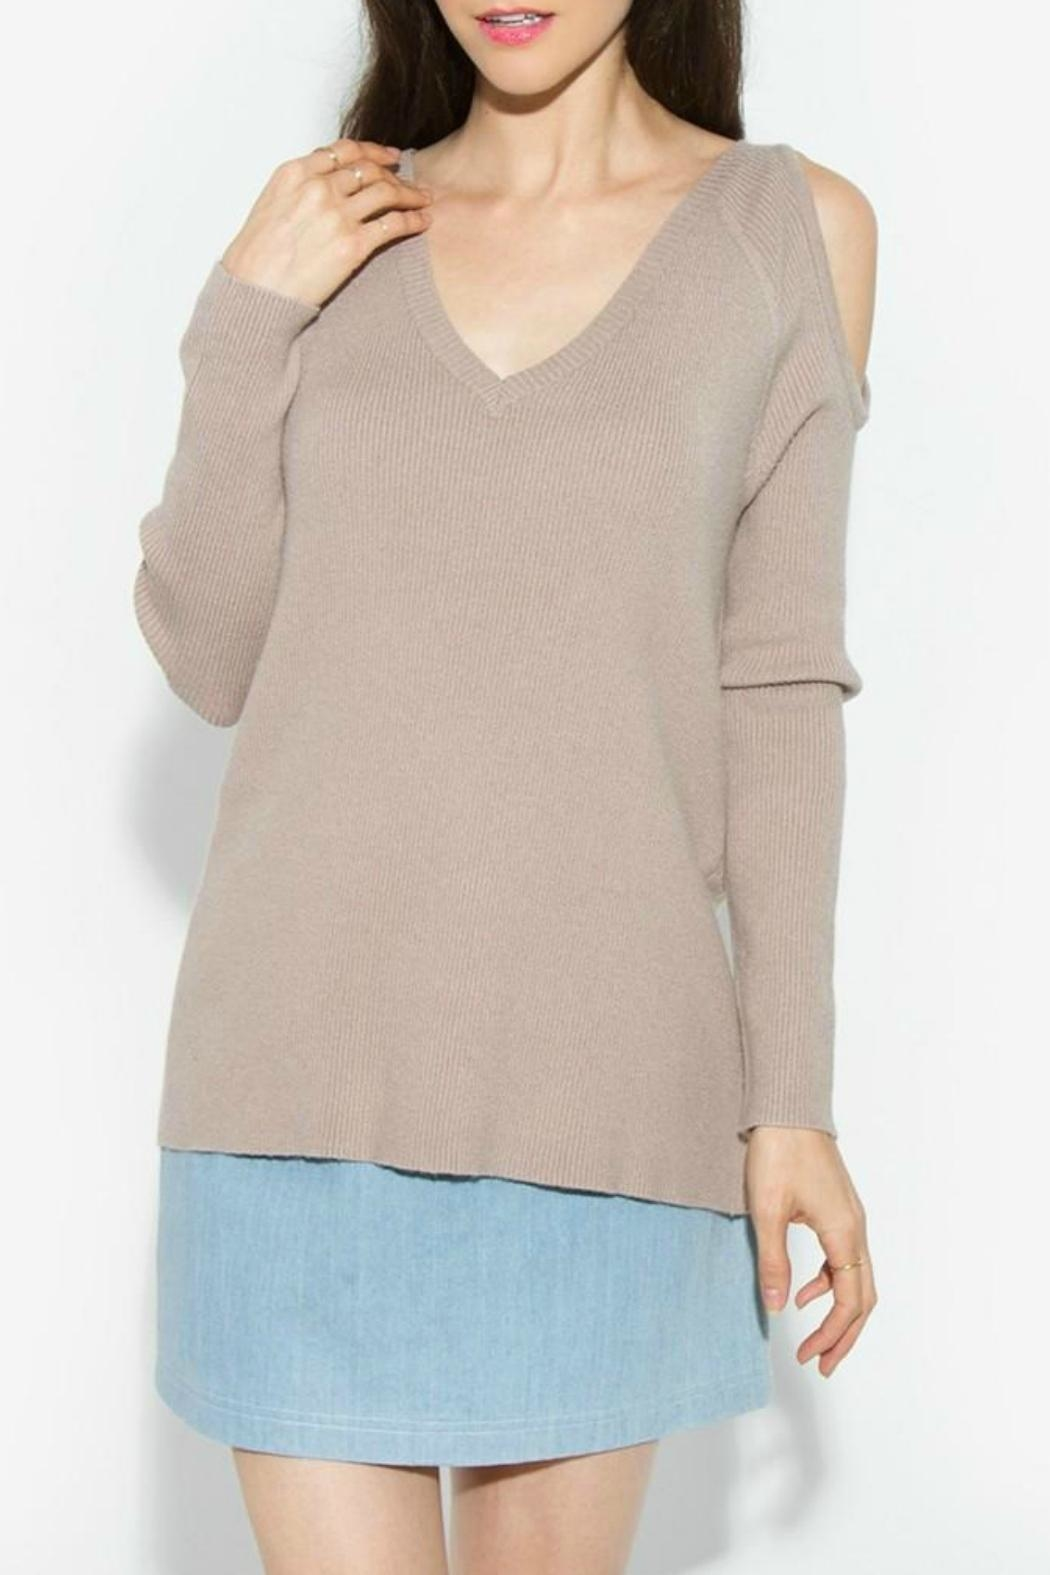 Sugar Lips Lune Cold Shoulder Sweater - Main Image